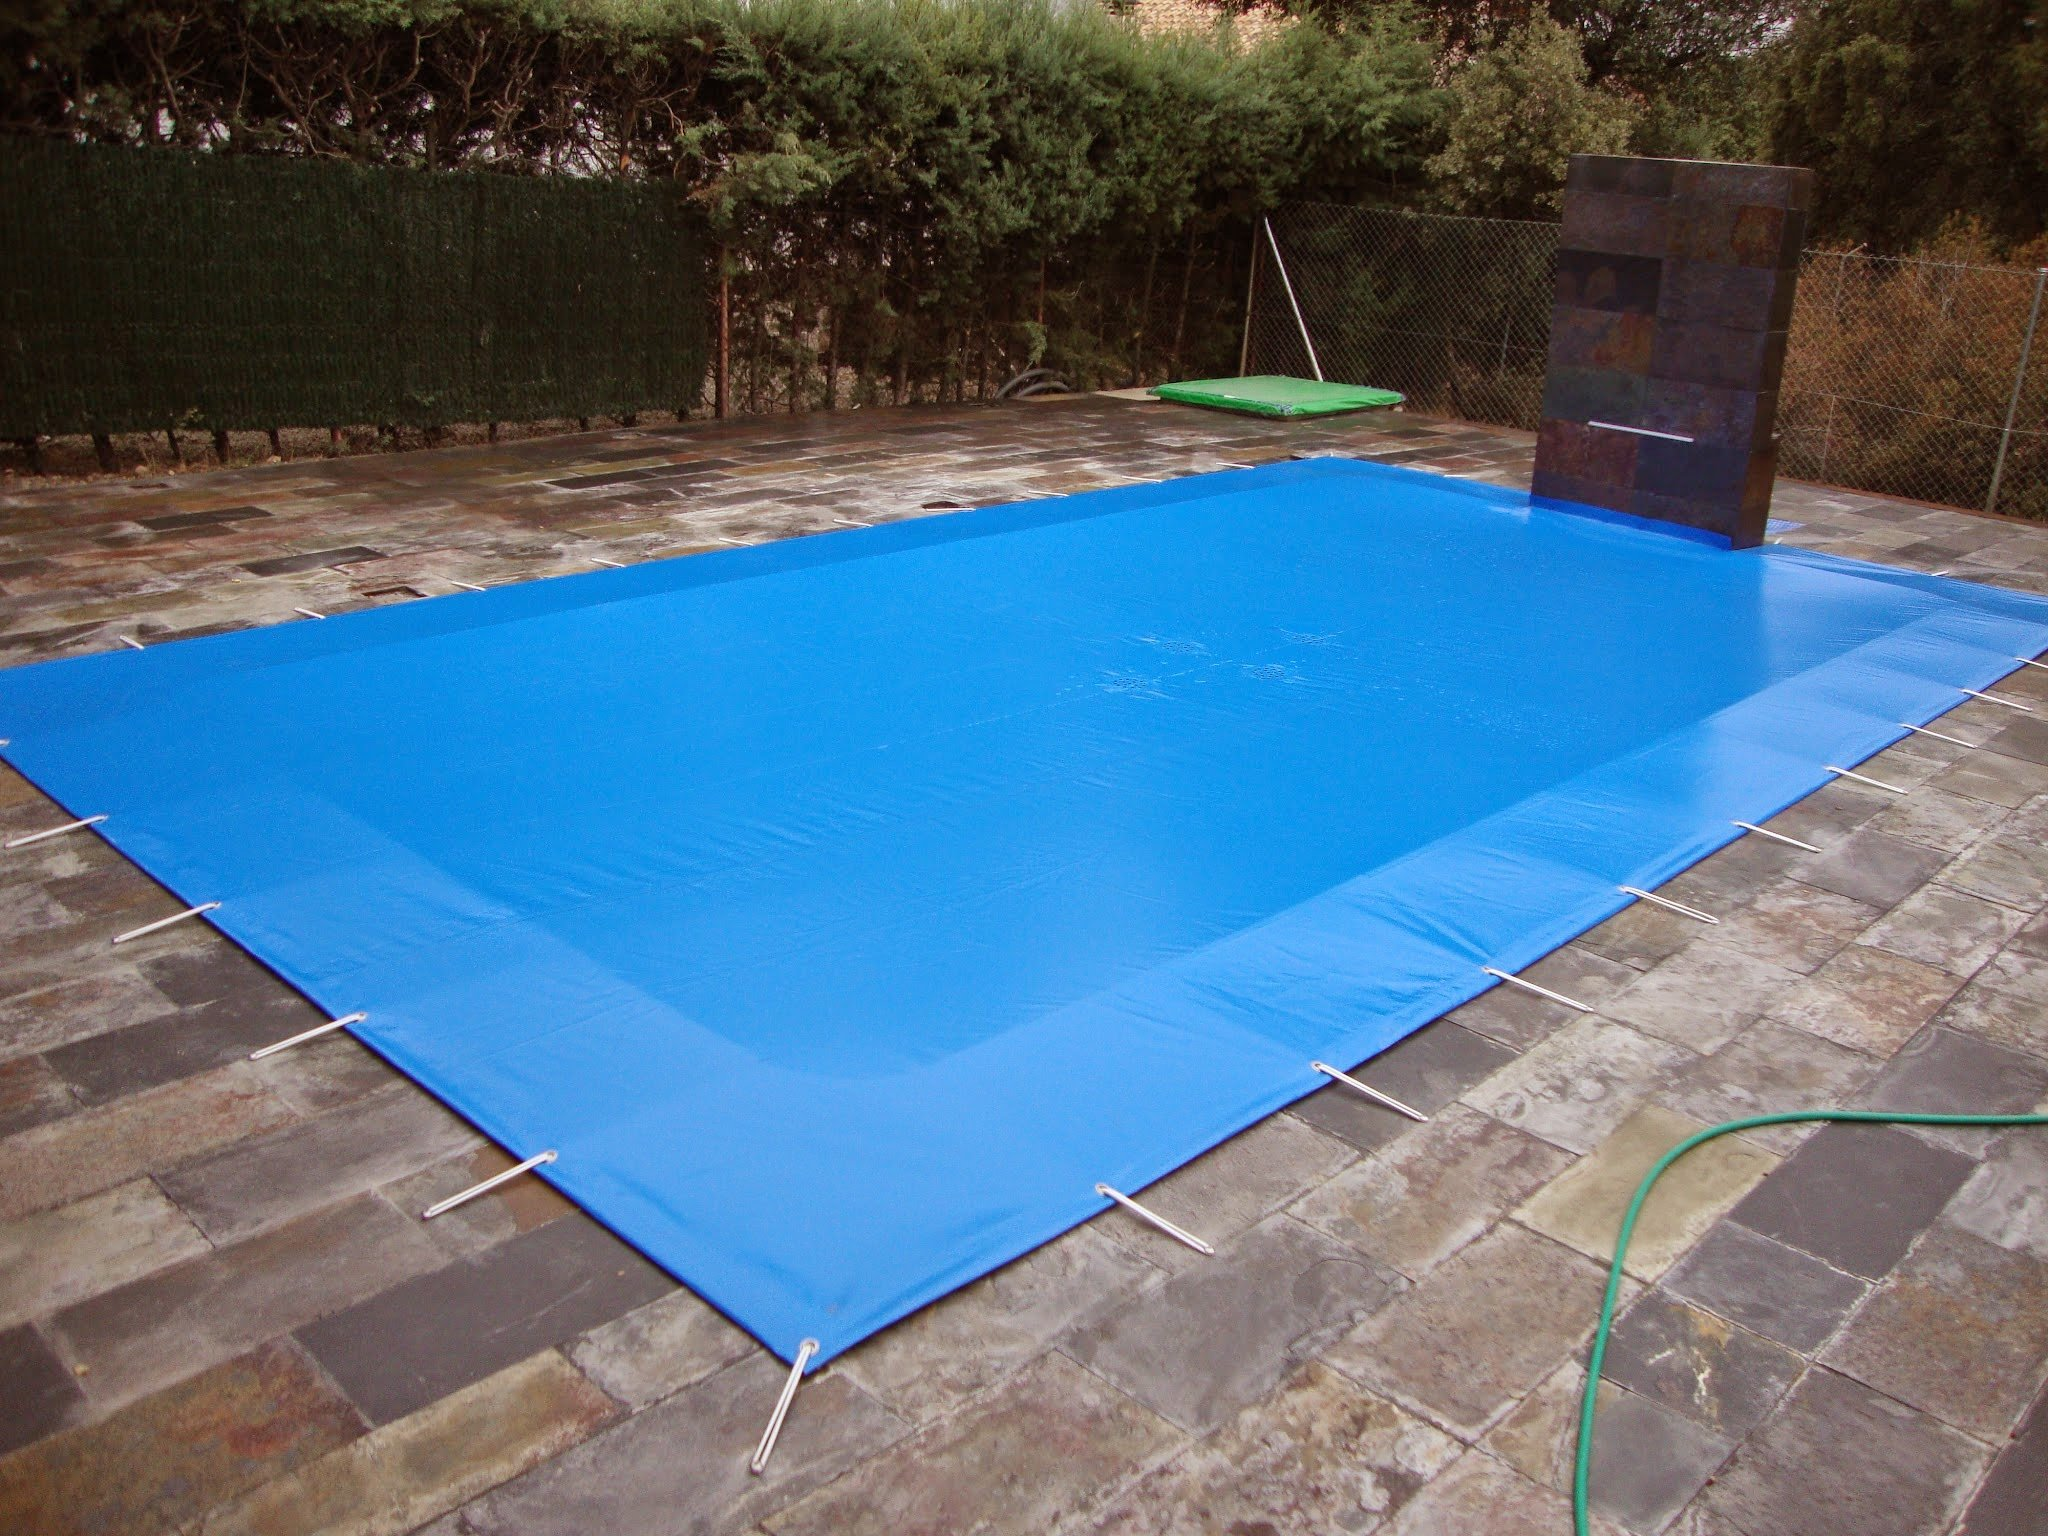 INTERNATIONAL COVER POOL Cubierta de Invierno para Piscina de 5x3 ...